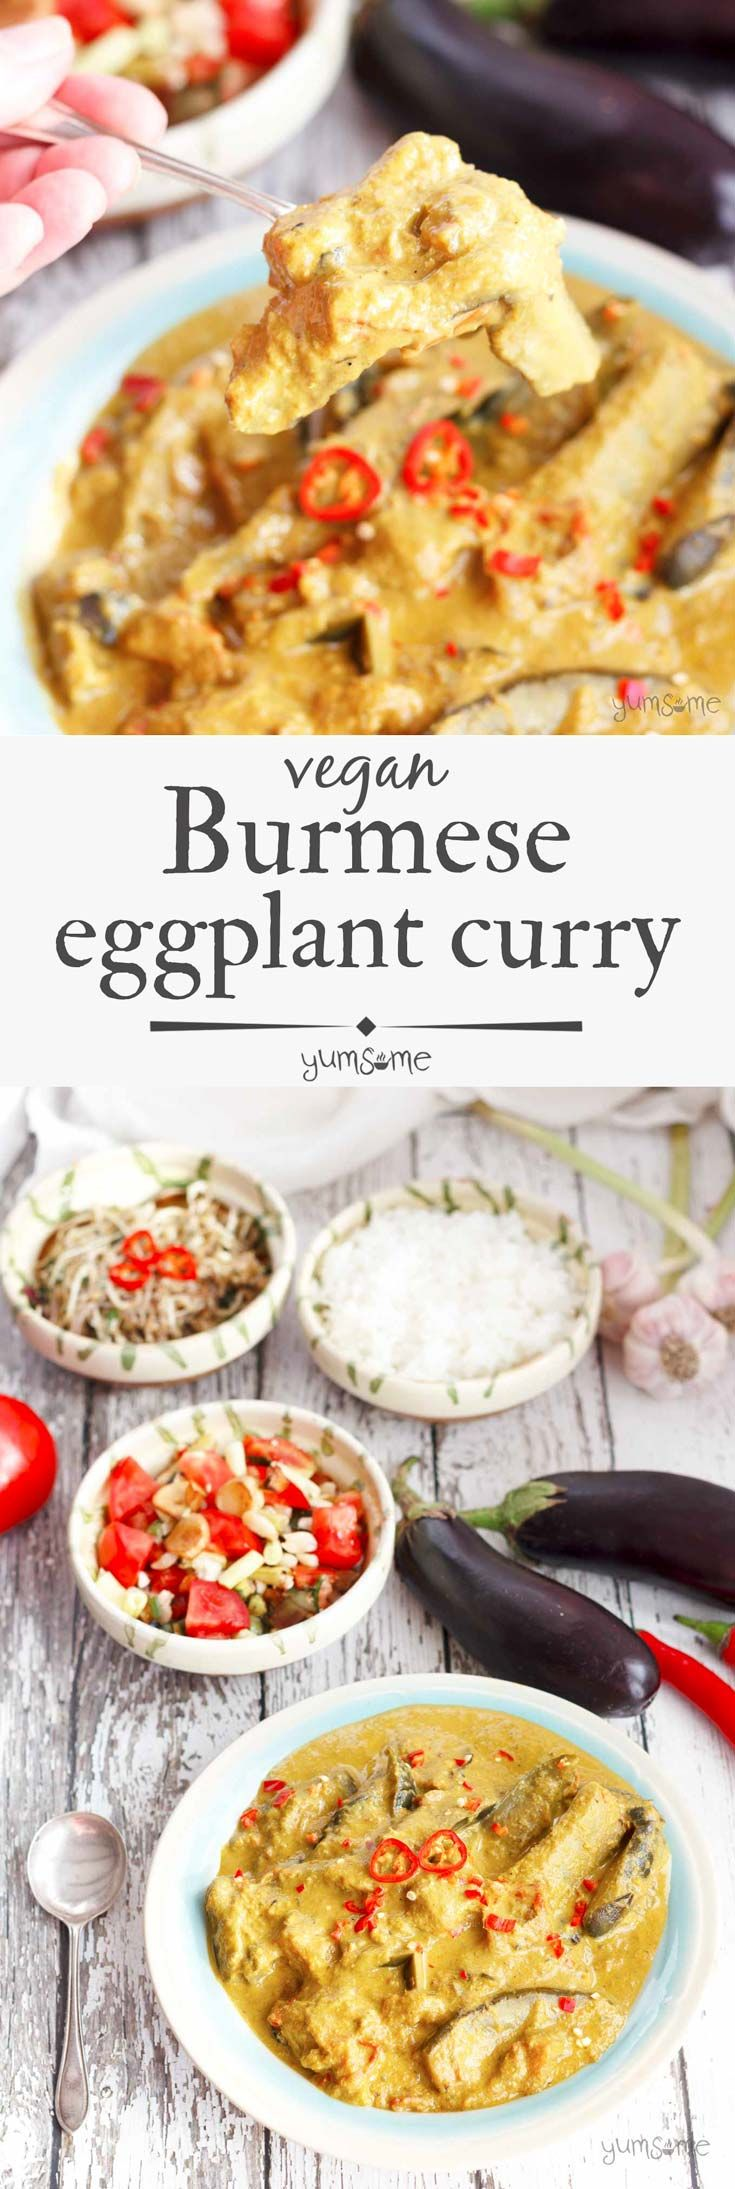 This mild vegan Burmese eggplant curry recipe, with its deliciously silky eggplant in a creamy, piquant gravy, is a perfect blend of sweet, sour, and spicy flavours. | yumsome.com via @yums0me